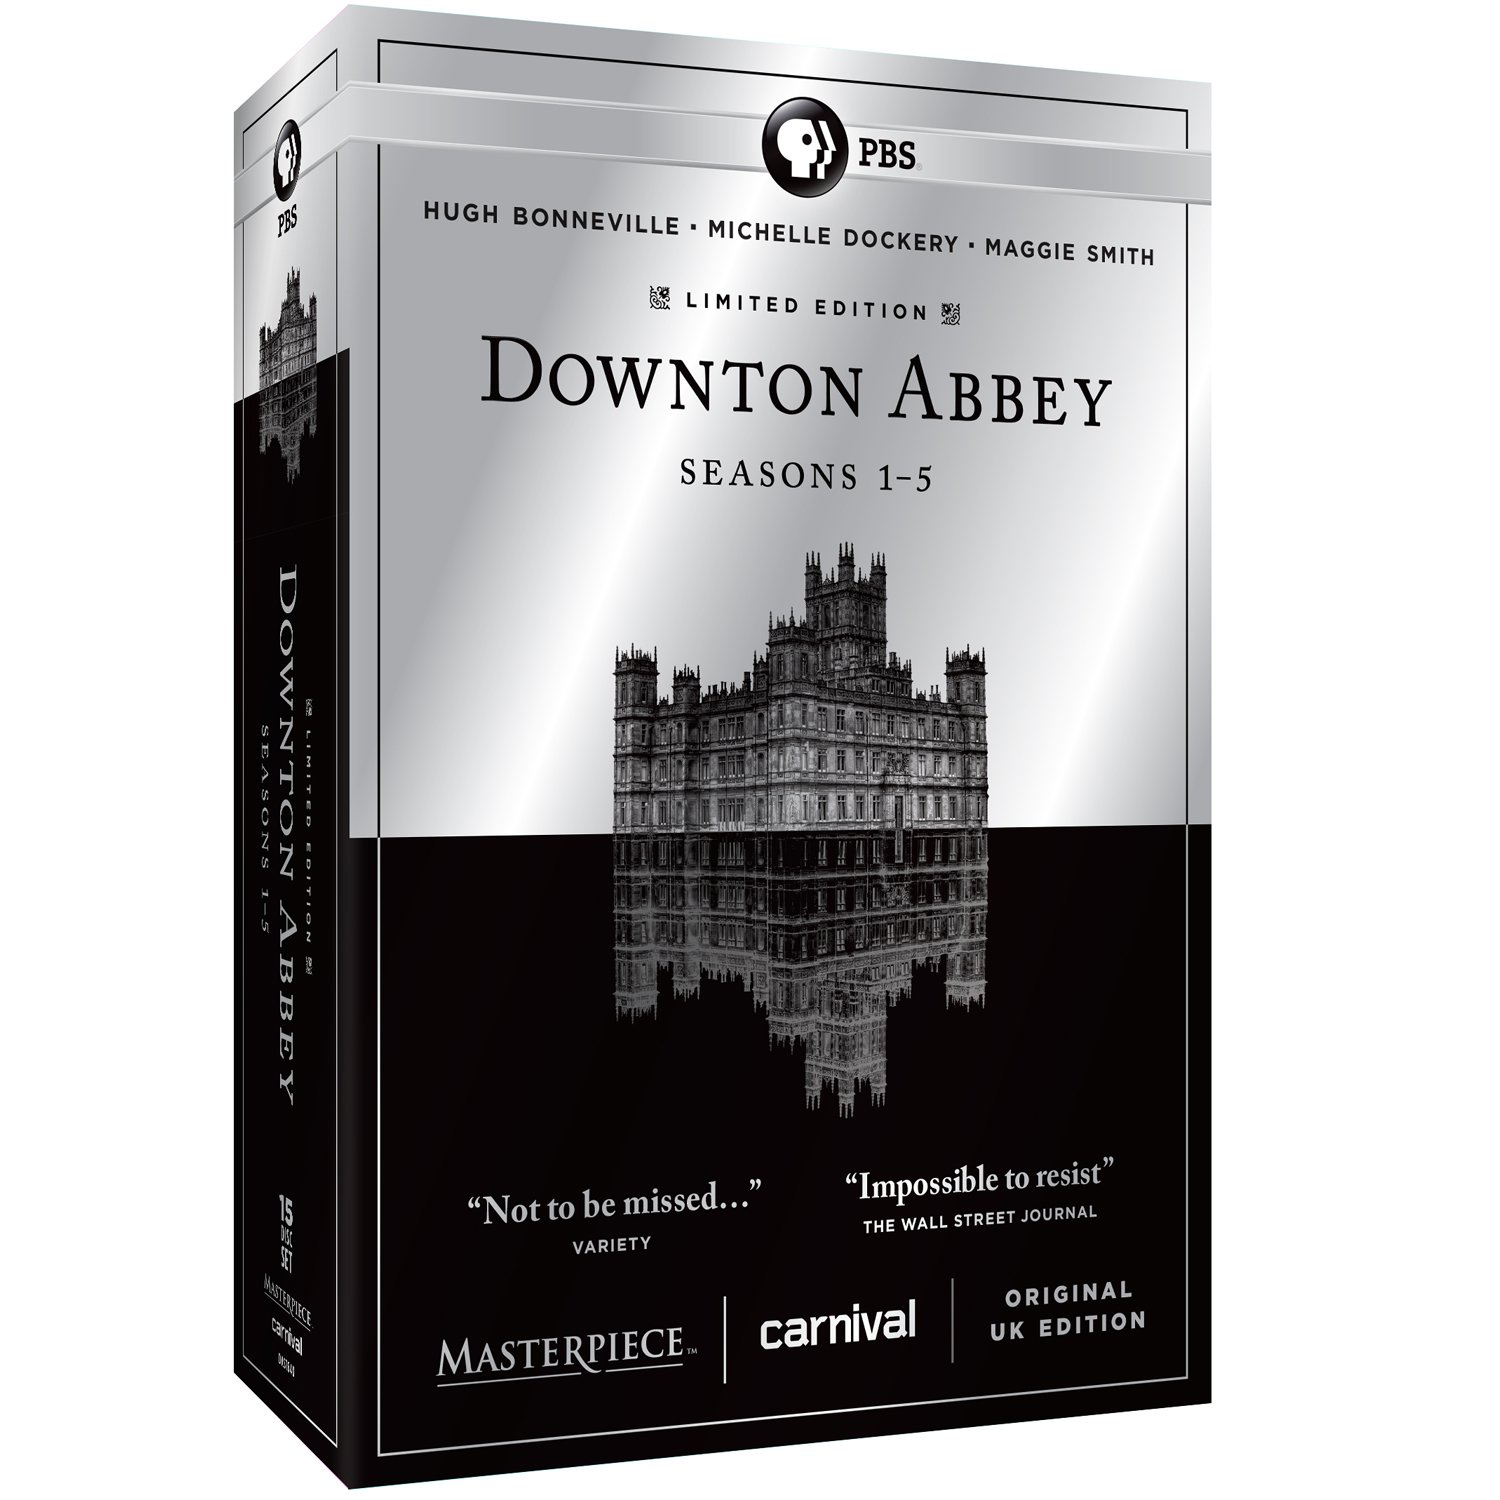 Downton Abbey [TV Series] - Masterpiece Classic: Downton Abbey: Seasons 1-5